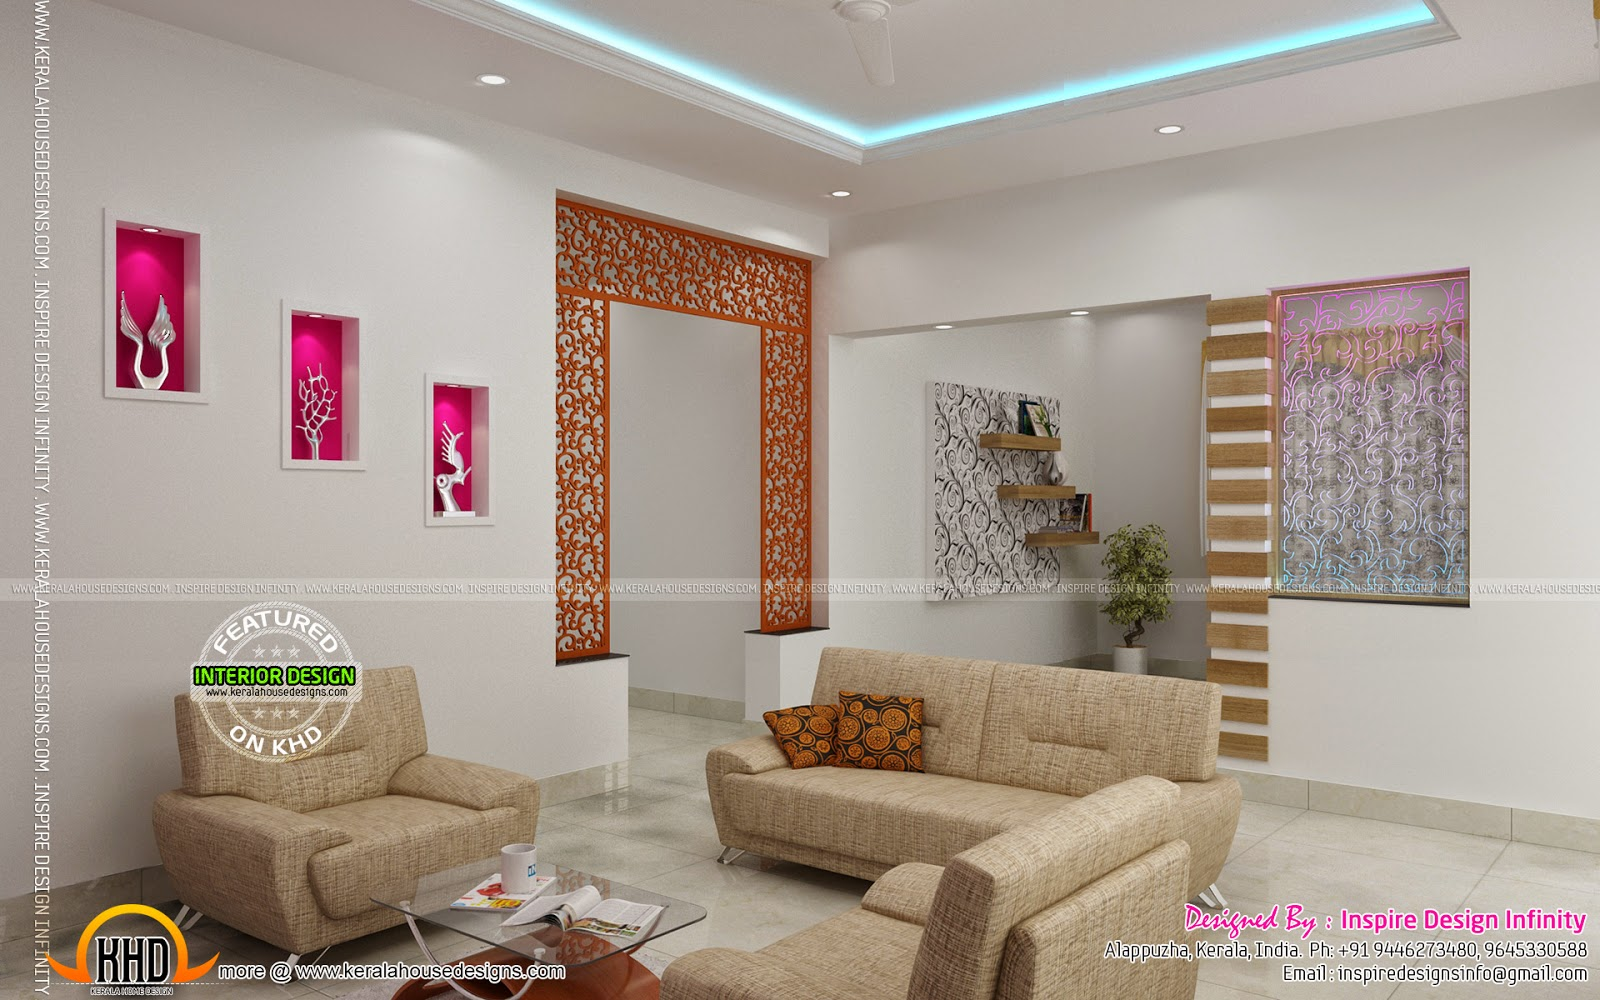 Interior Designs By Inspire Design Infinity